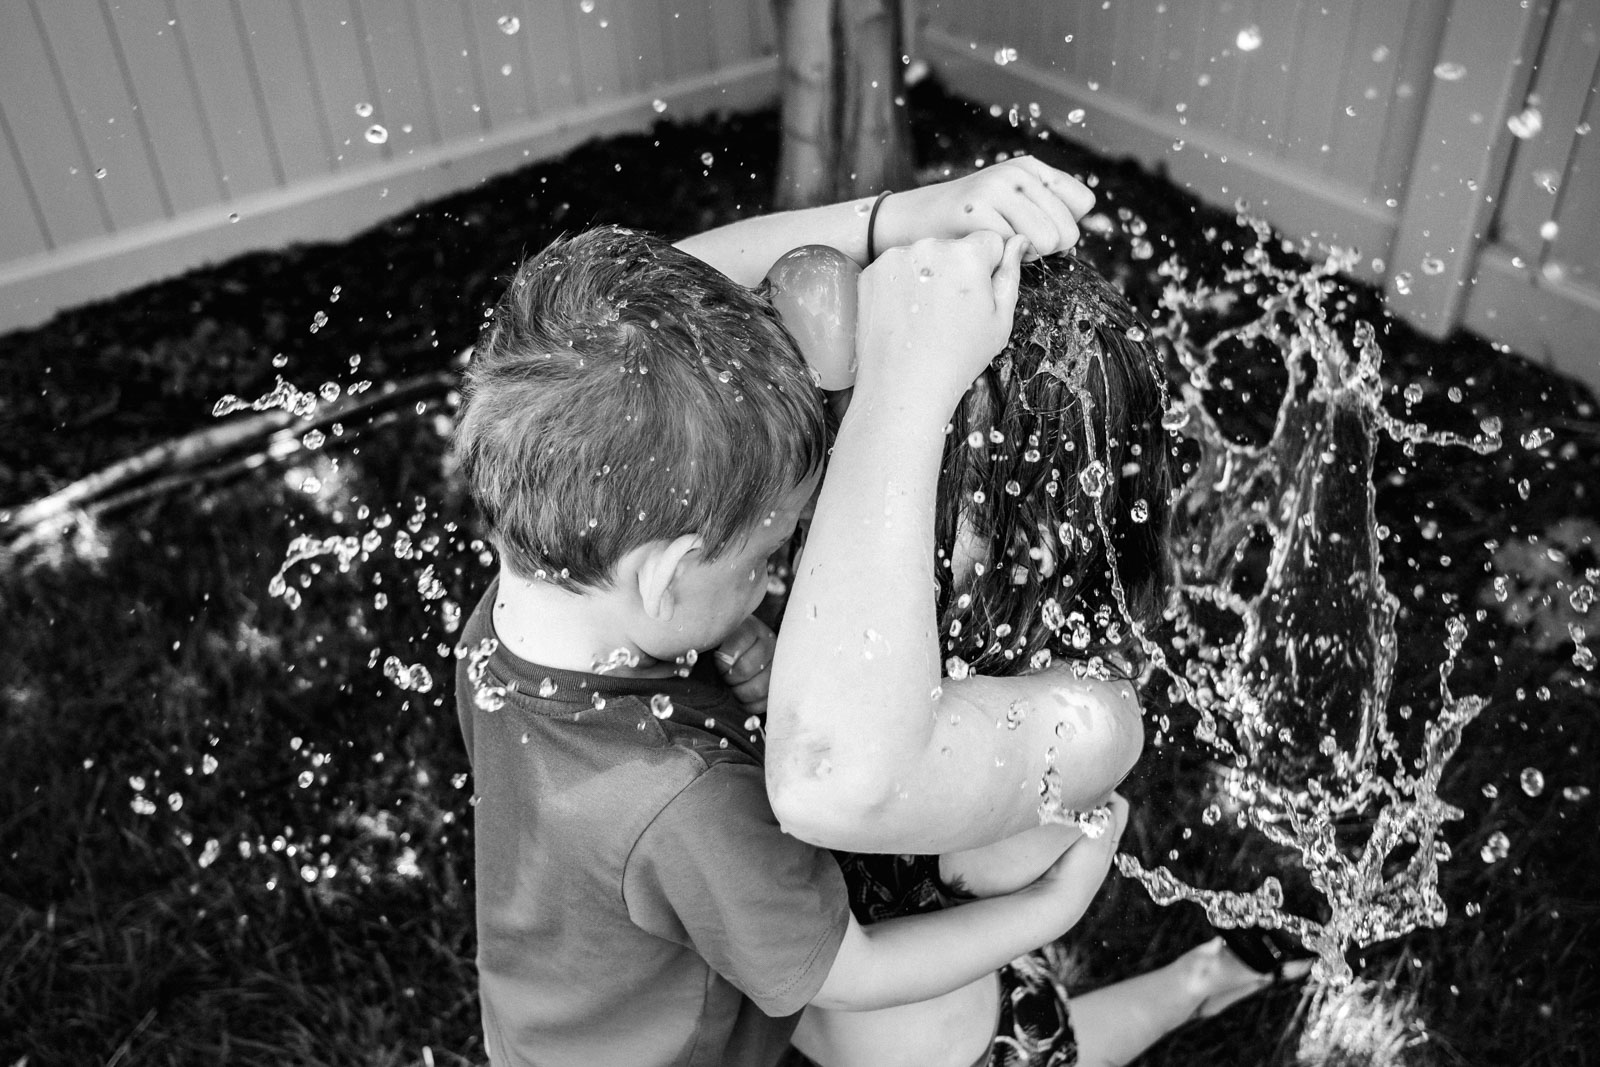 Black and white photo of kids playing in water